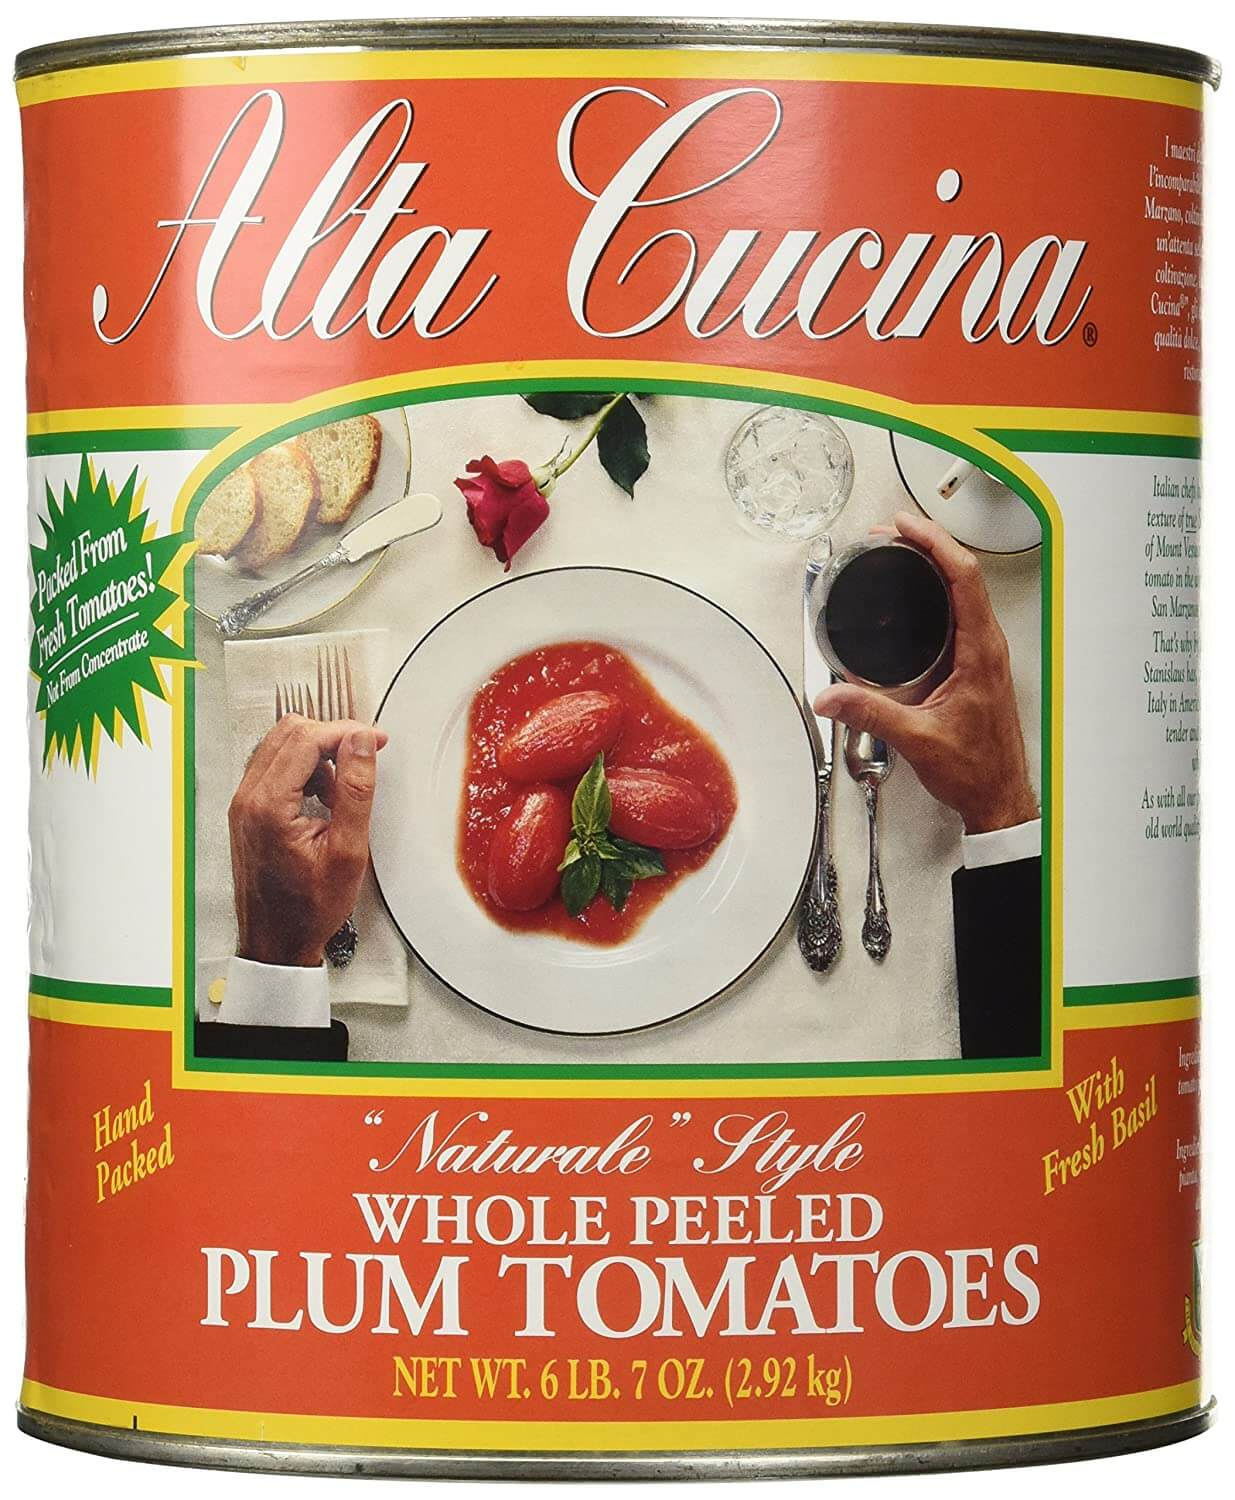 Stanislaus Alta Cucina Whole Tomatoes